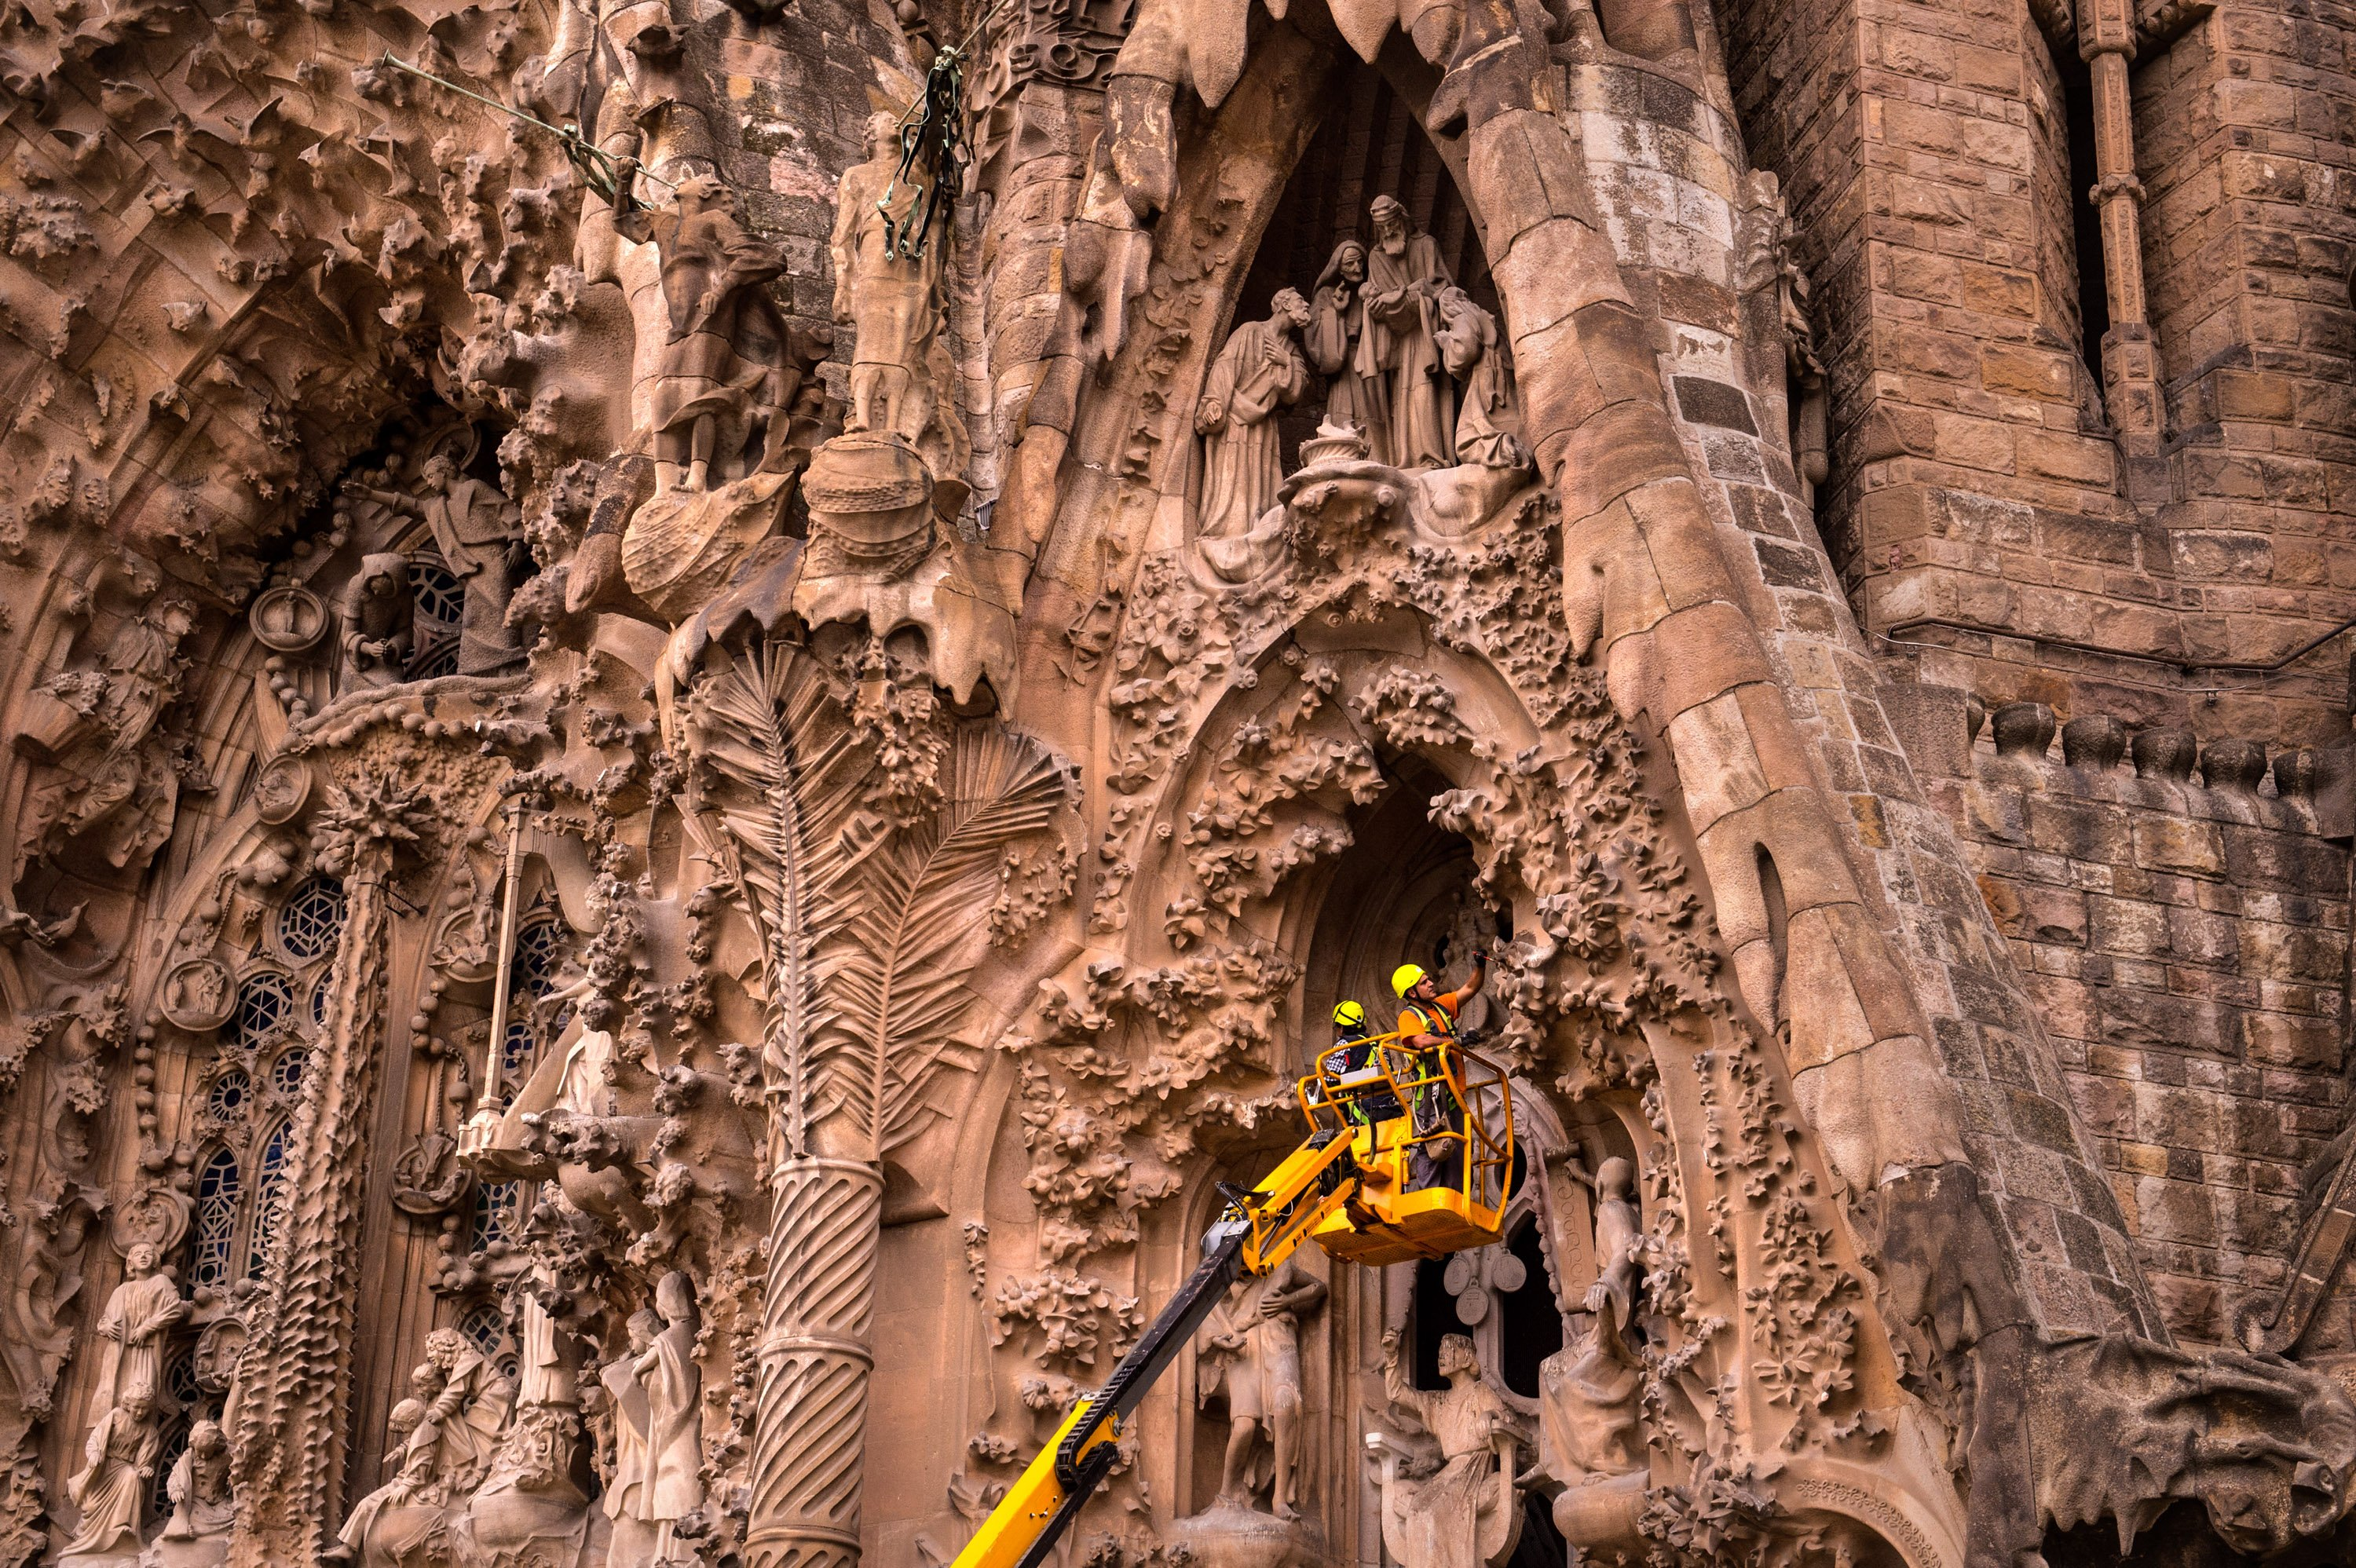 Employees work on the Birth's Facade of 'La Sagrada Familia' in Barcelona on Oct. 26, 2015.